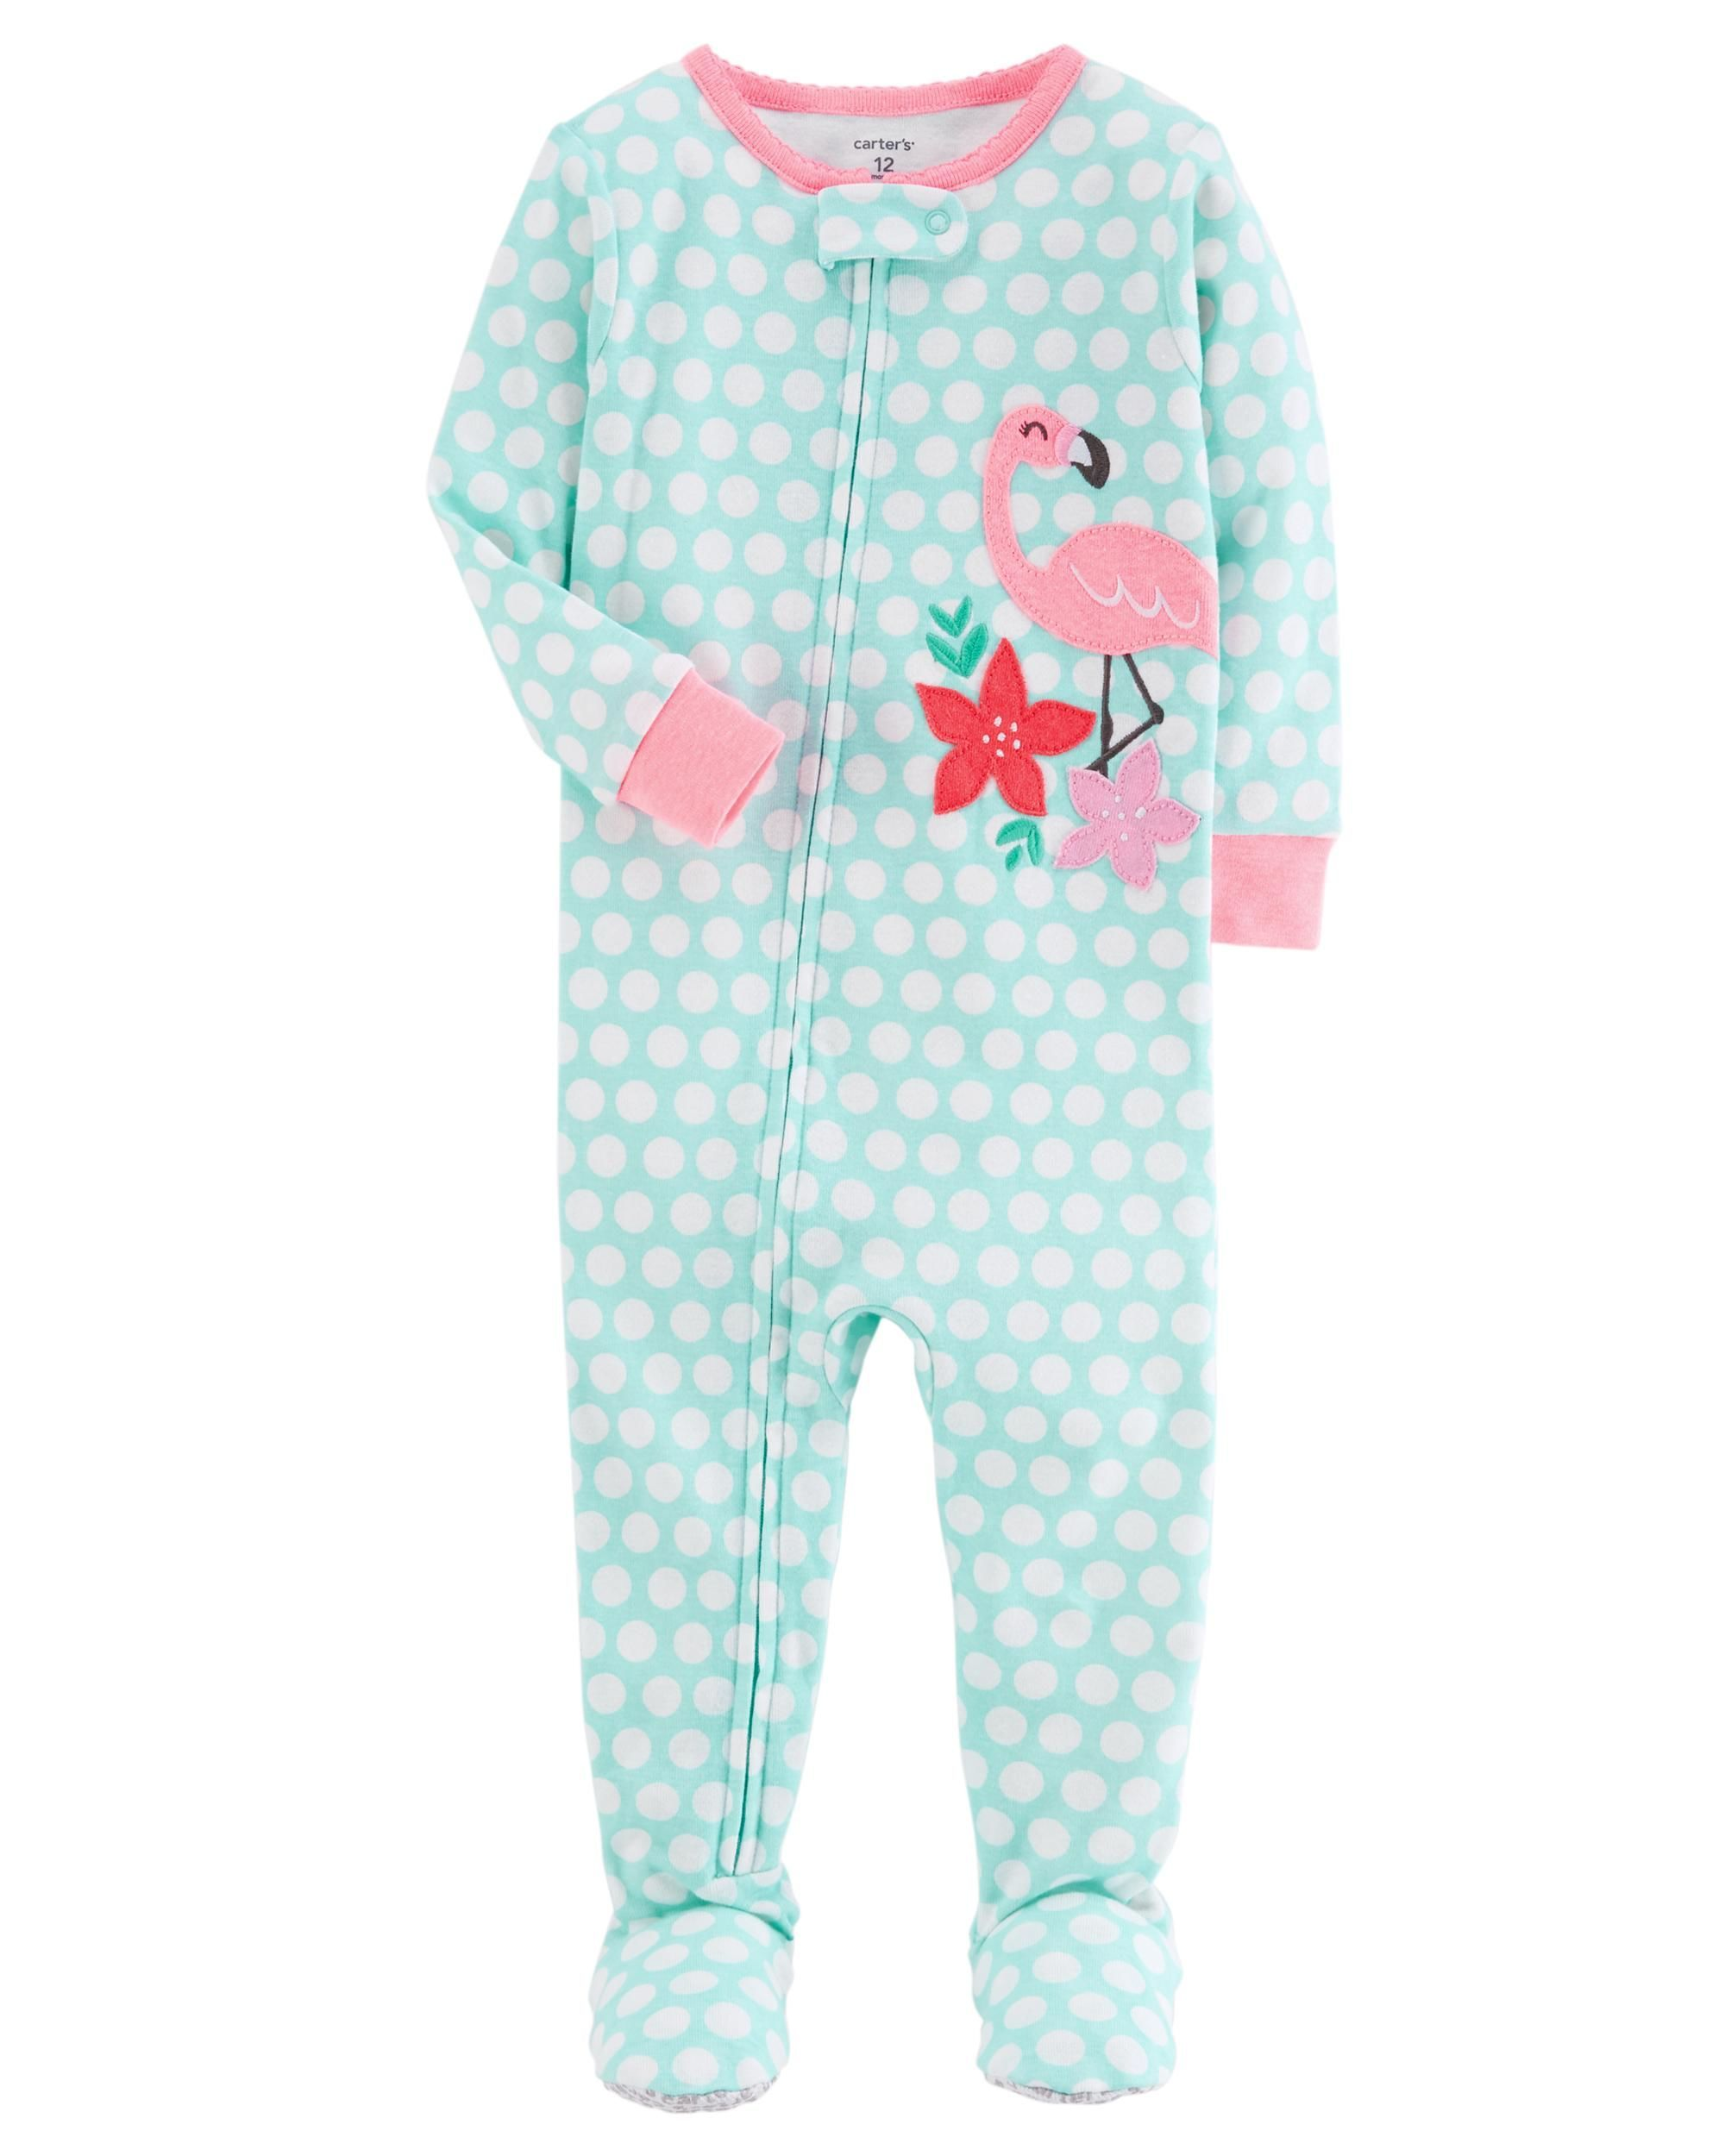 6227d144c 1-Piece Neon Flamingo Snug Fit Cotton PJs